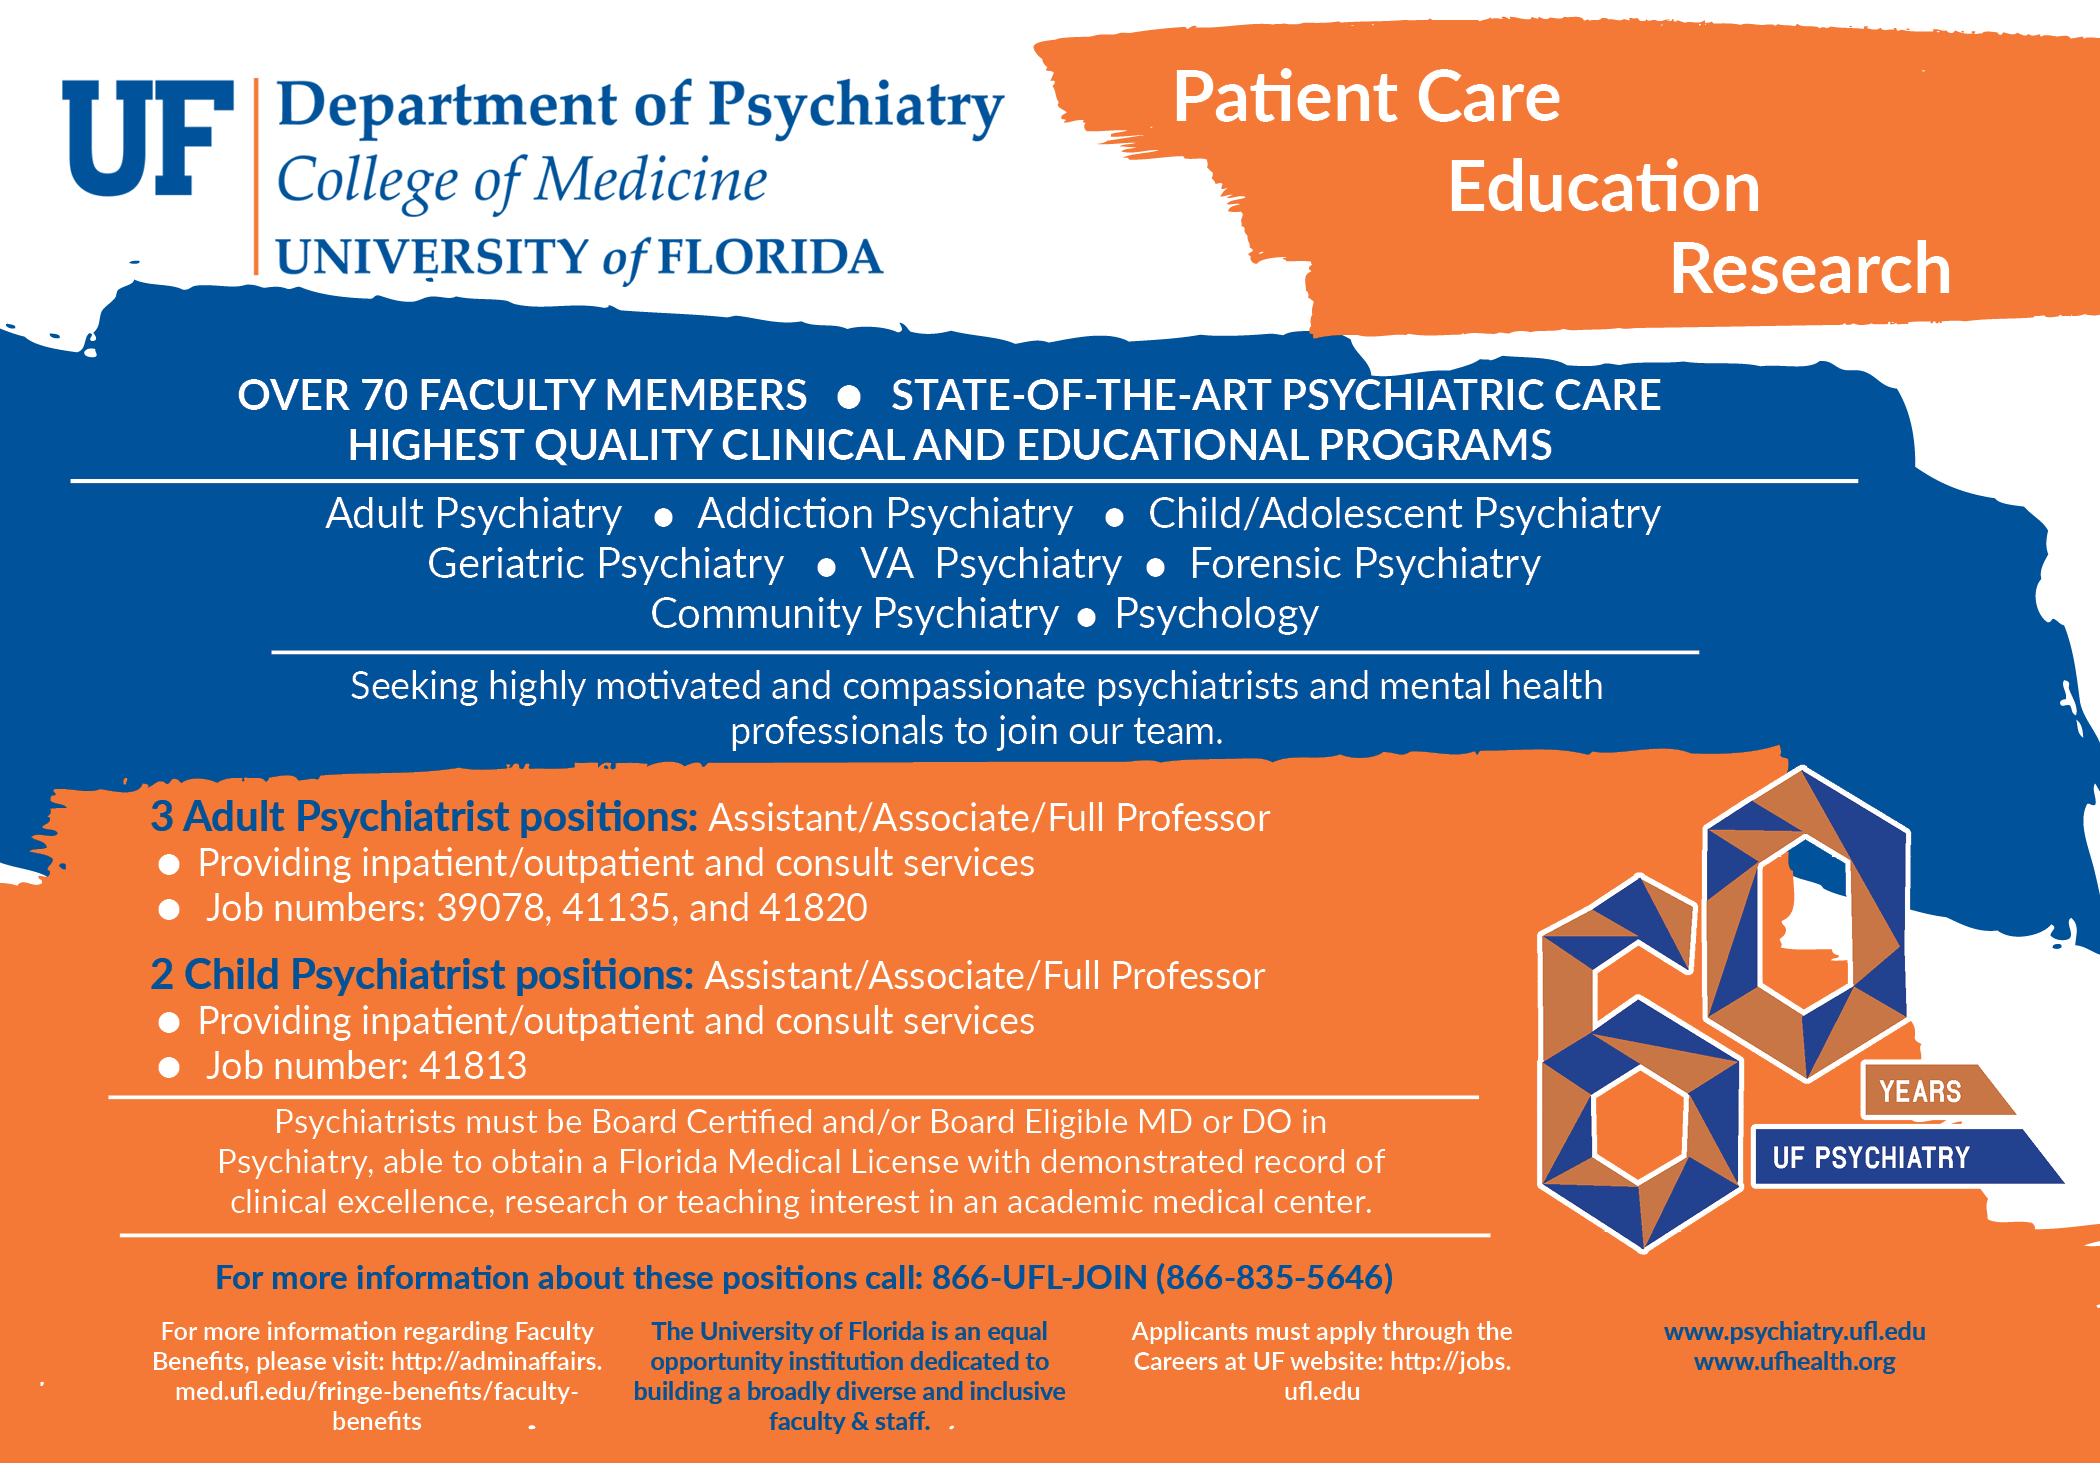 Department Of Psychiatry College Of Medicine University Of Florida